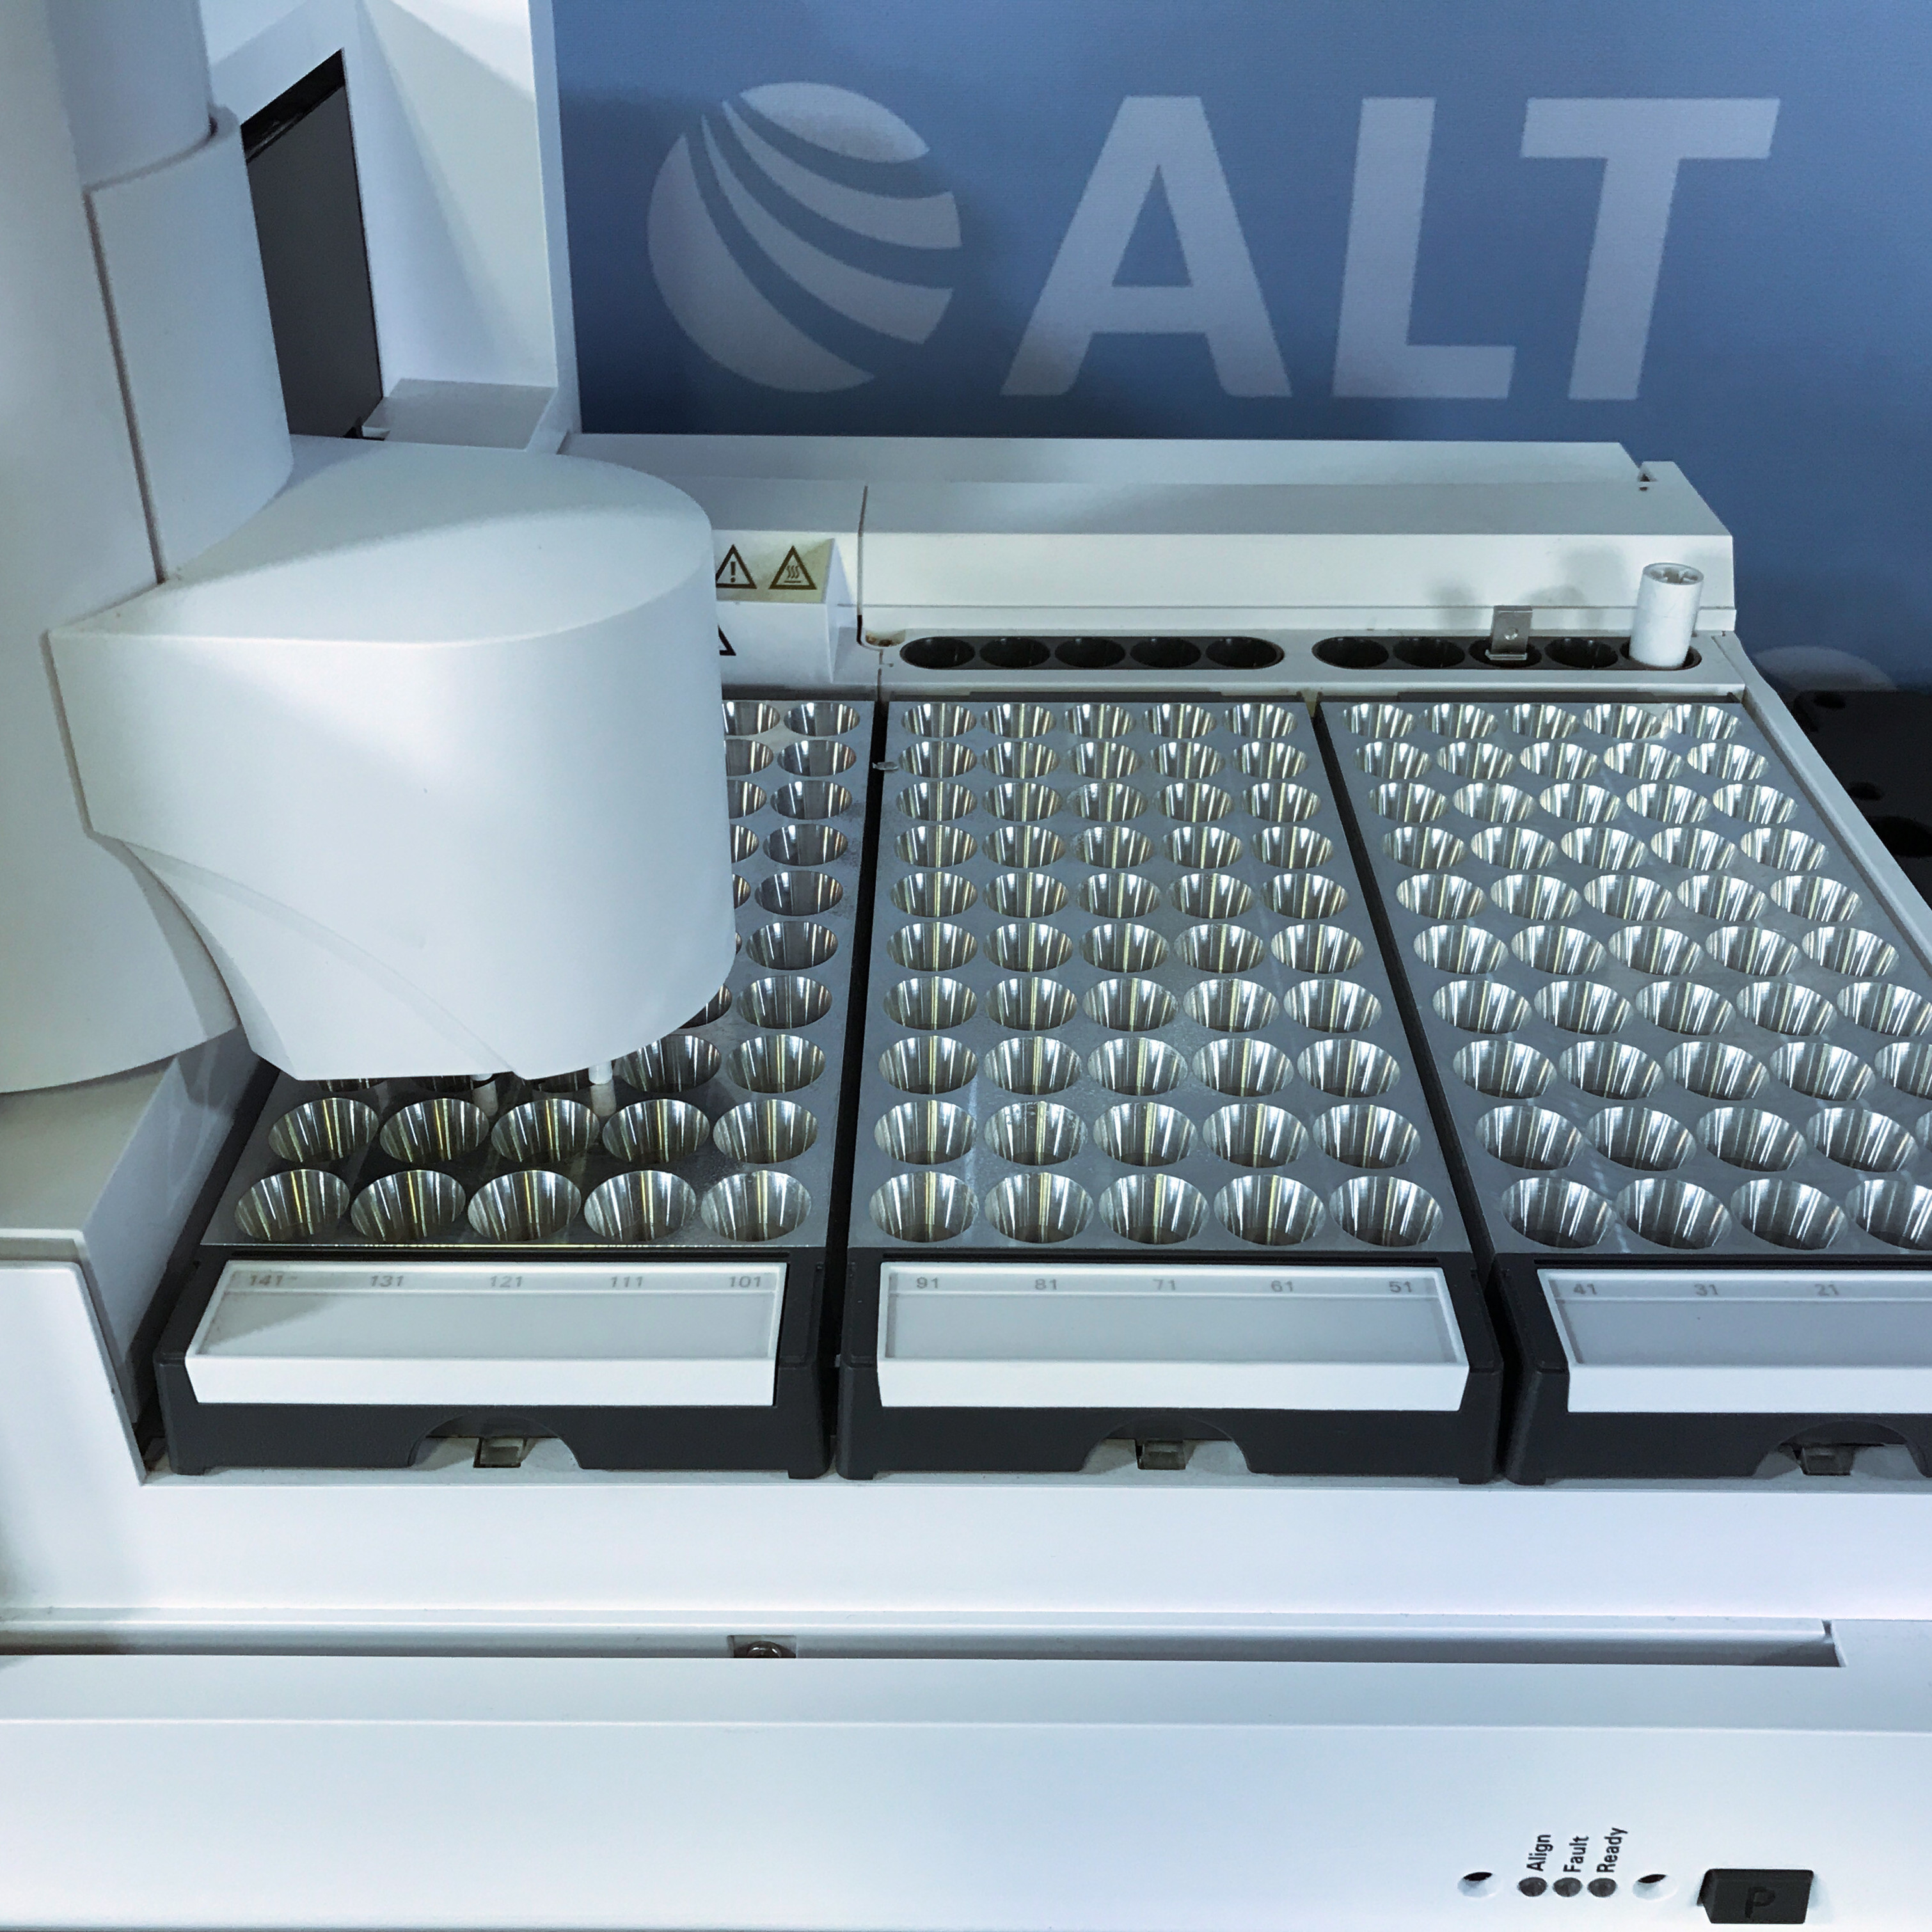 Agilent Technologies 7696A G4529A Sample Prep Workbench Image